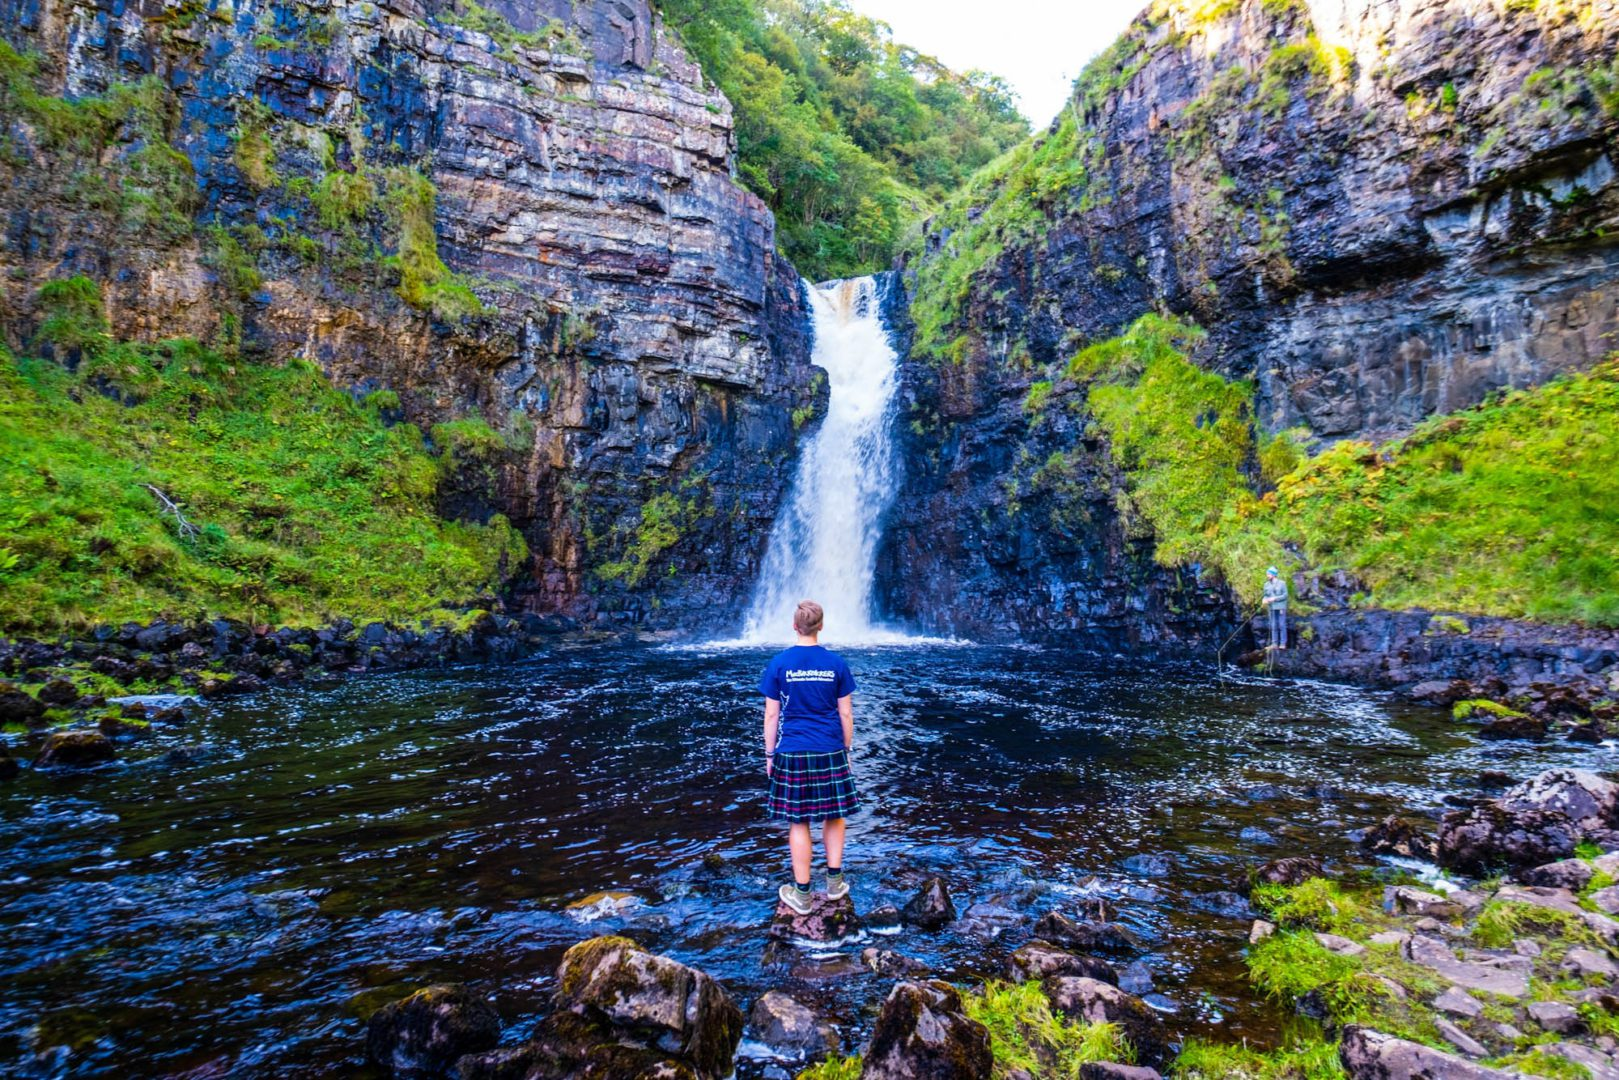 MacBackpackers Tour Lealt Falls by Rolling Sloane